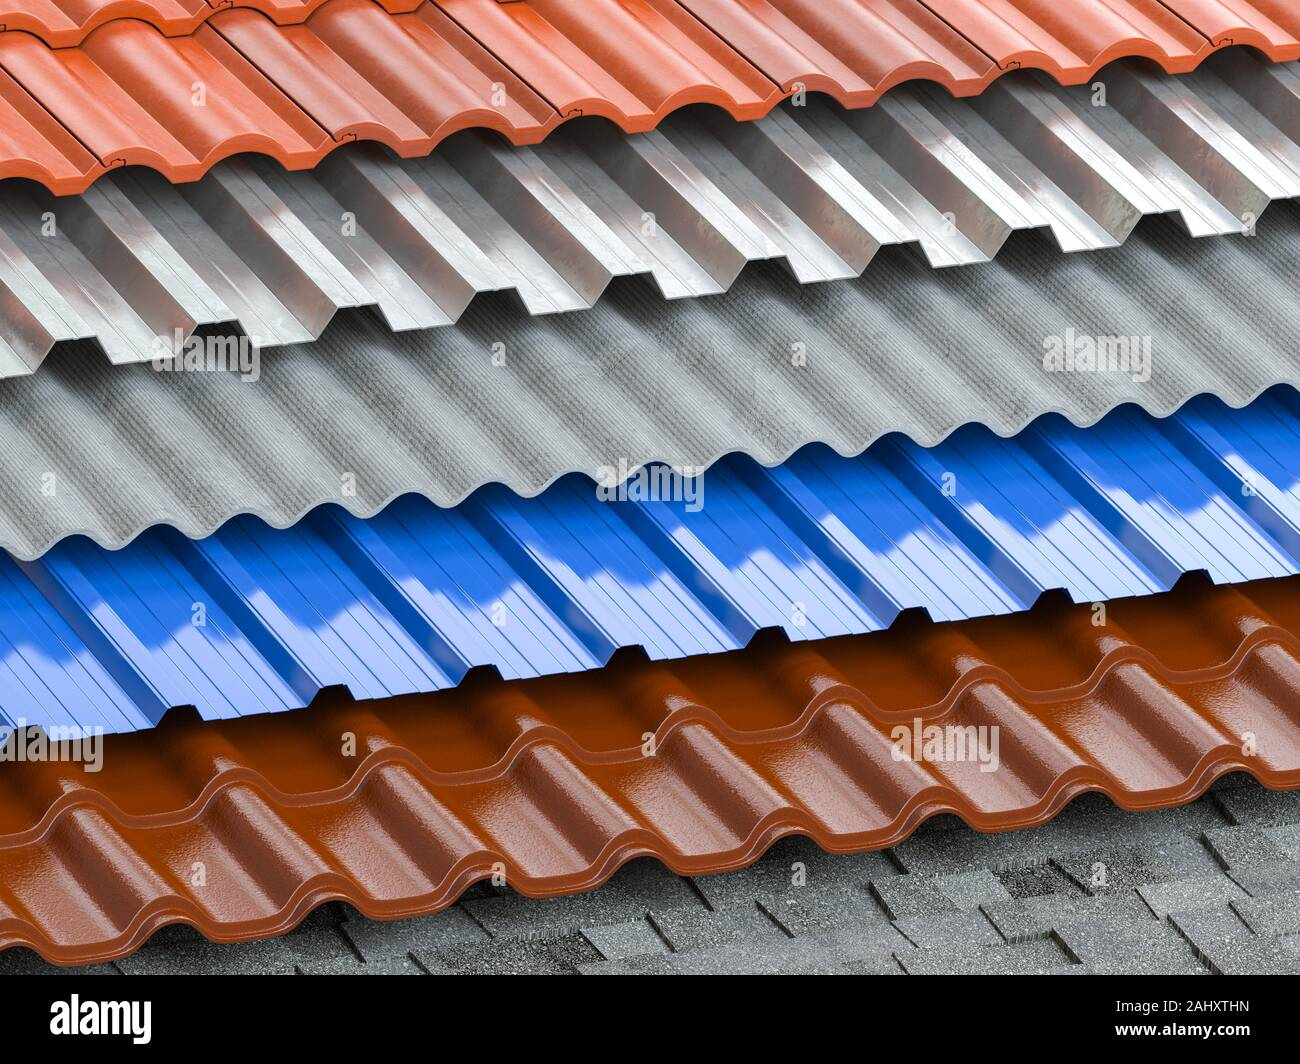 Different Types Of Roof Coating Background From Layers Of Sheet